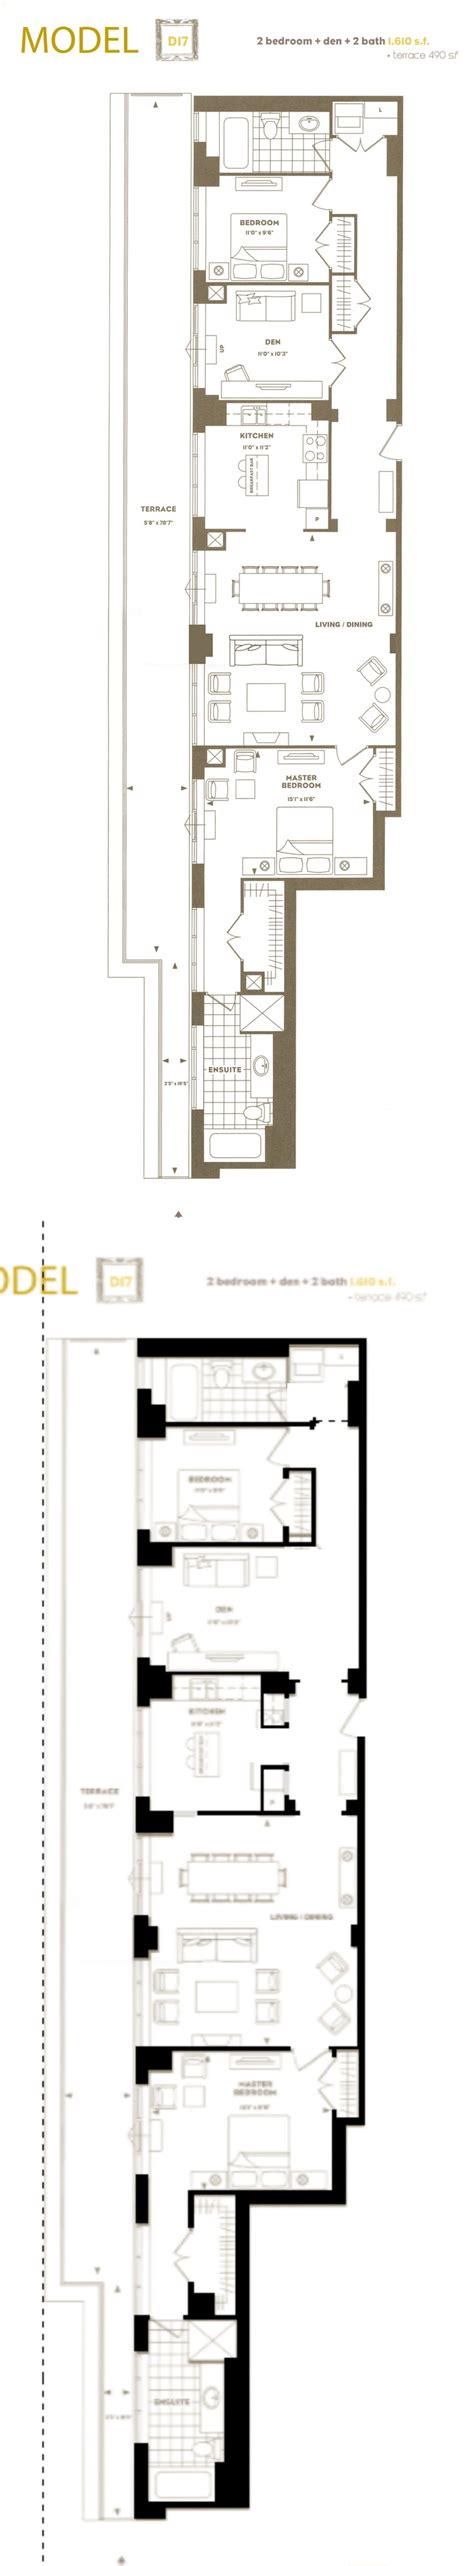 long narrow apartment floor plans why it rocks long and narrow means great flow while